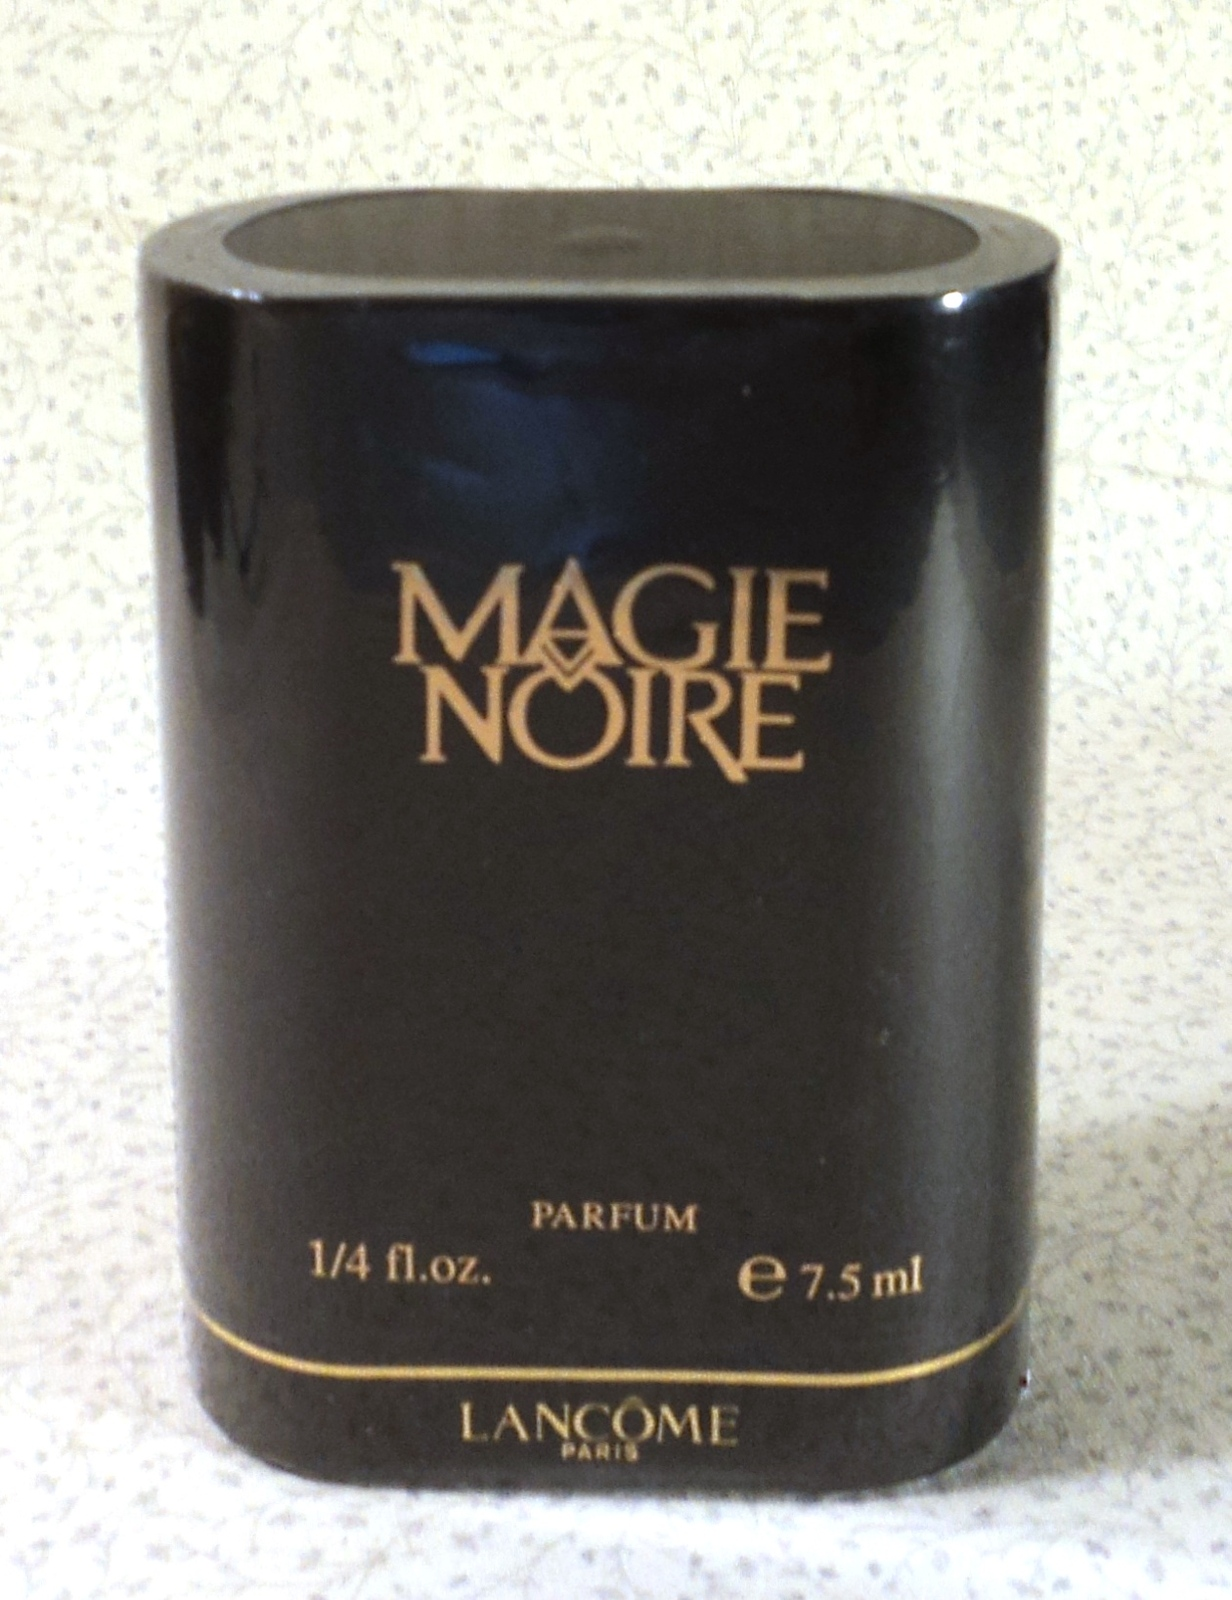 Primary image for Lancome Magie Noire Parfum - 1/4 oz. - Sealed